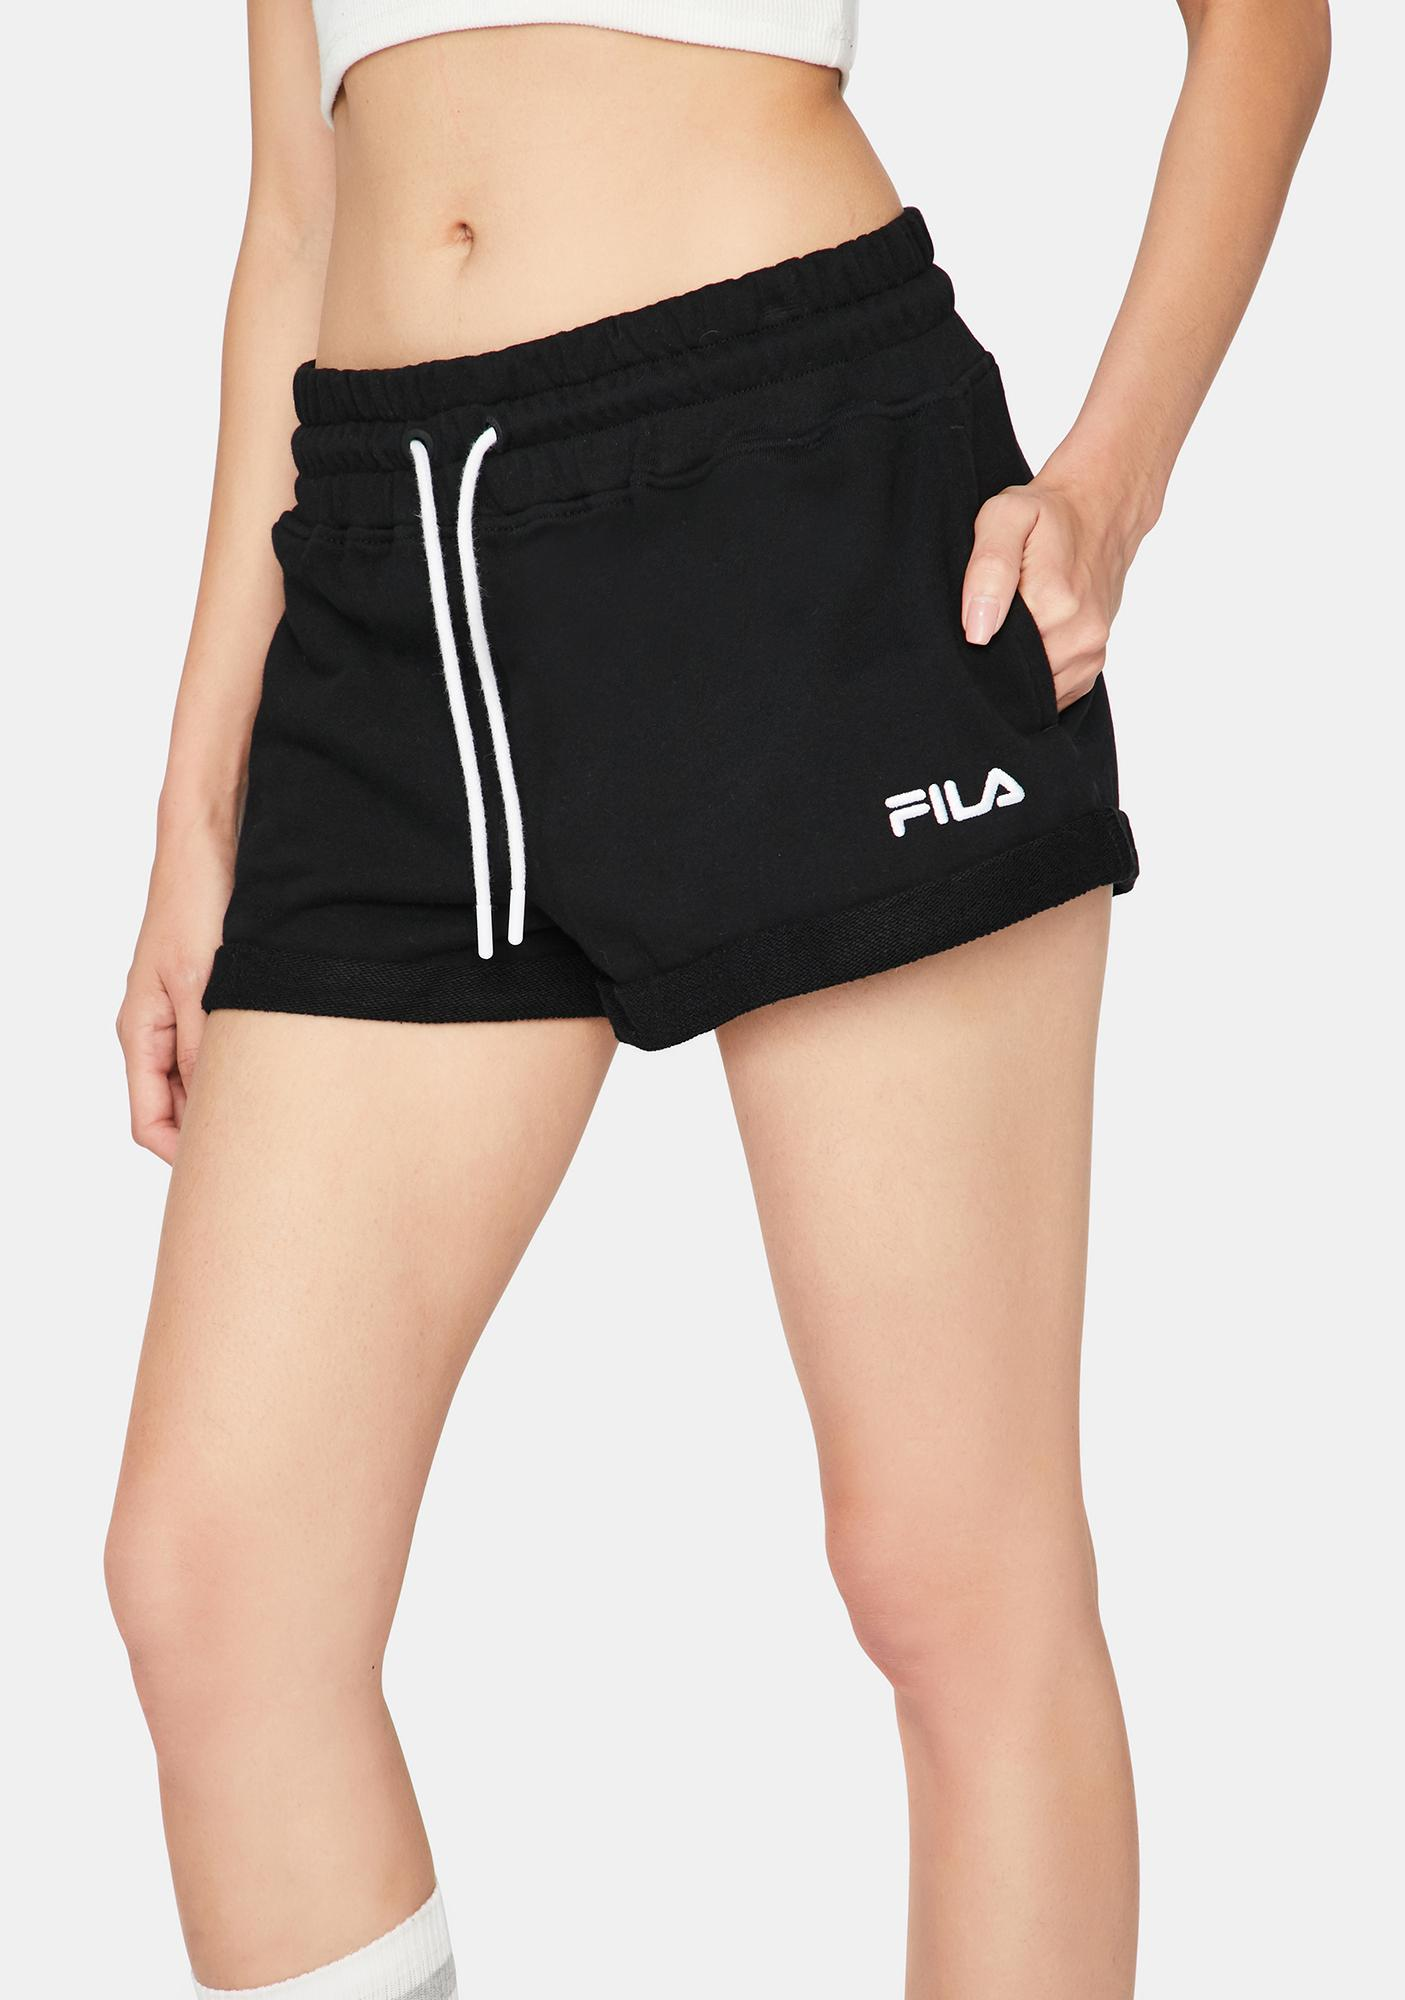 Fila Didi Leggings